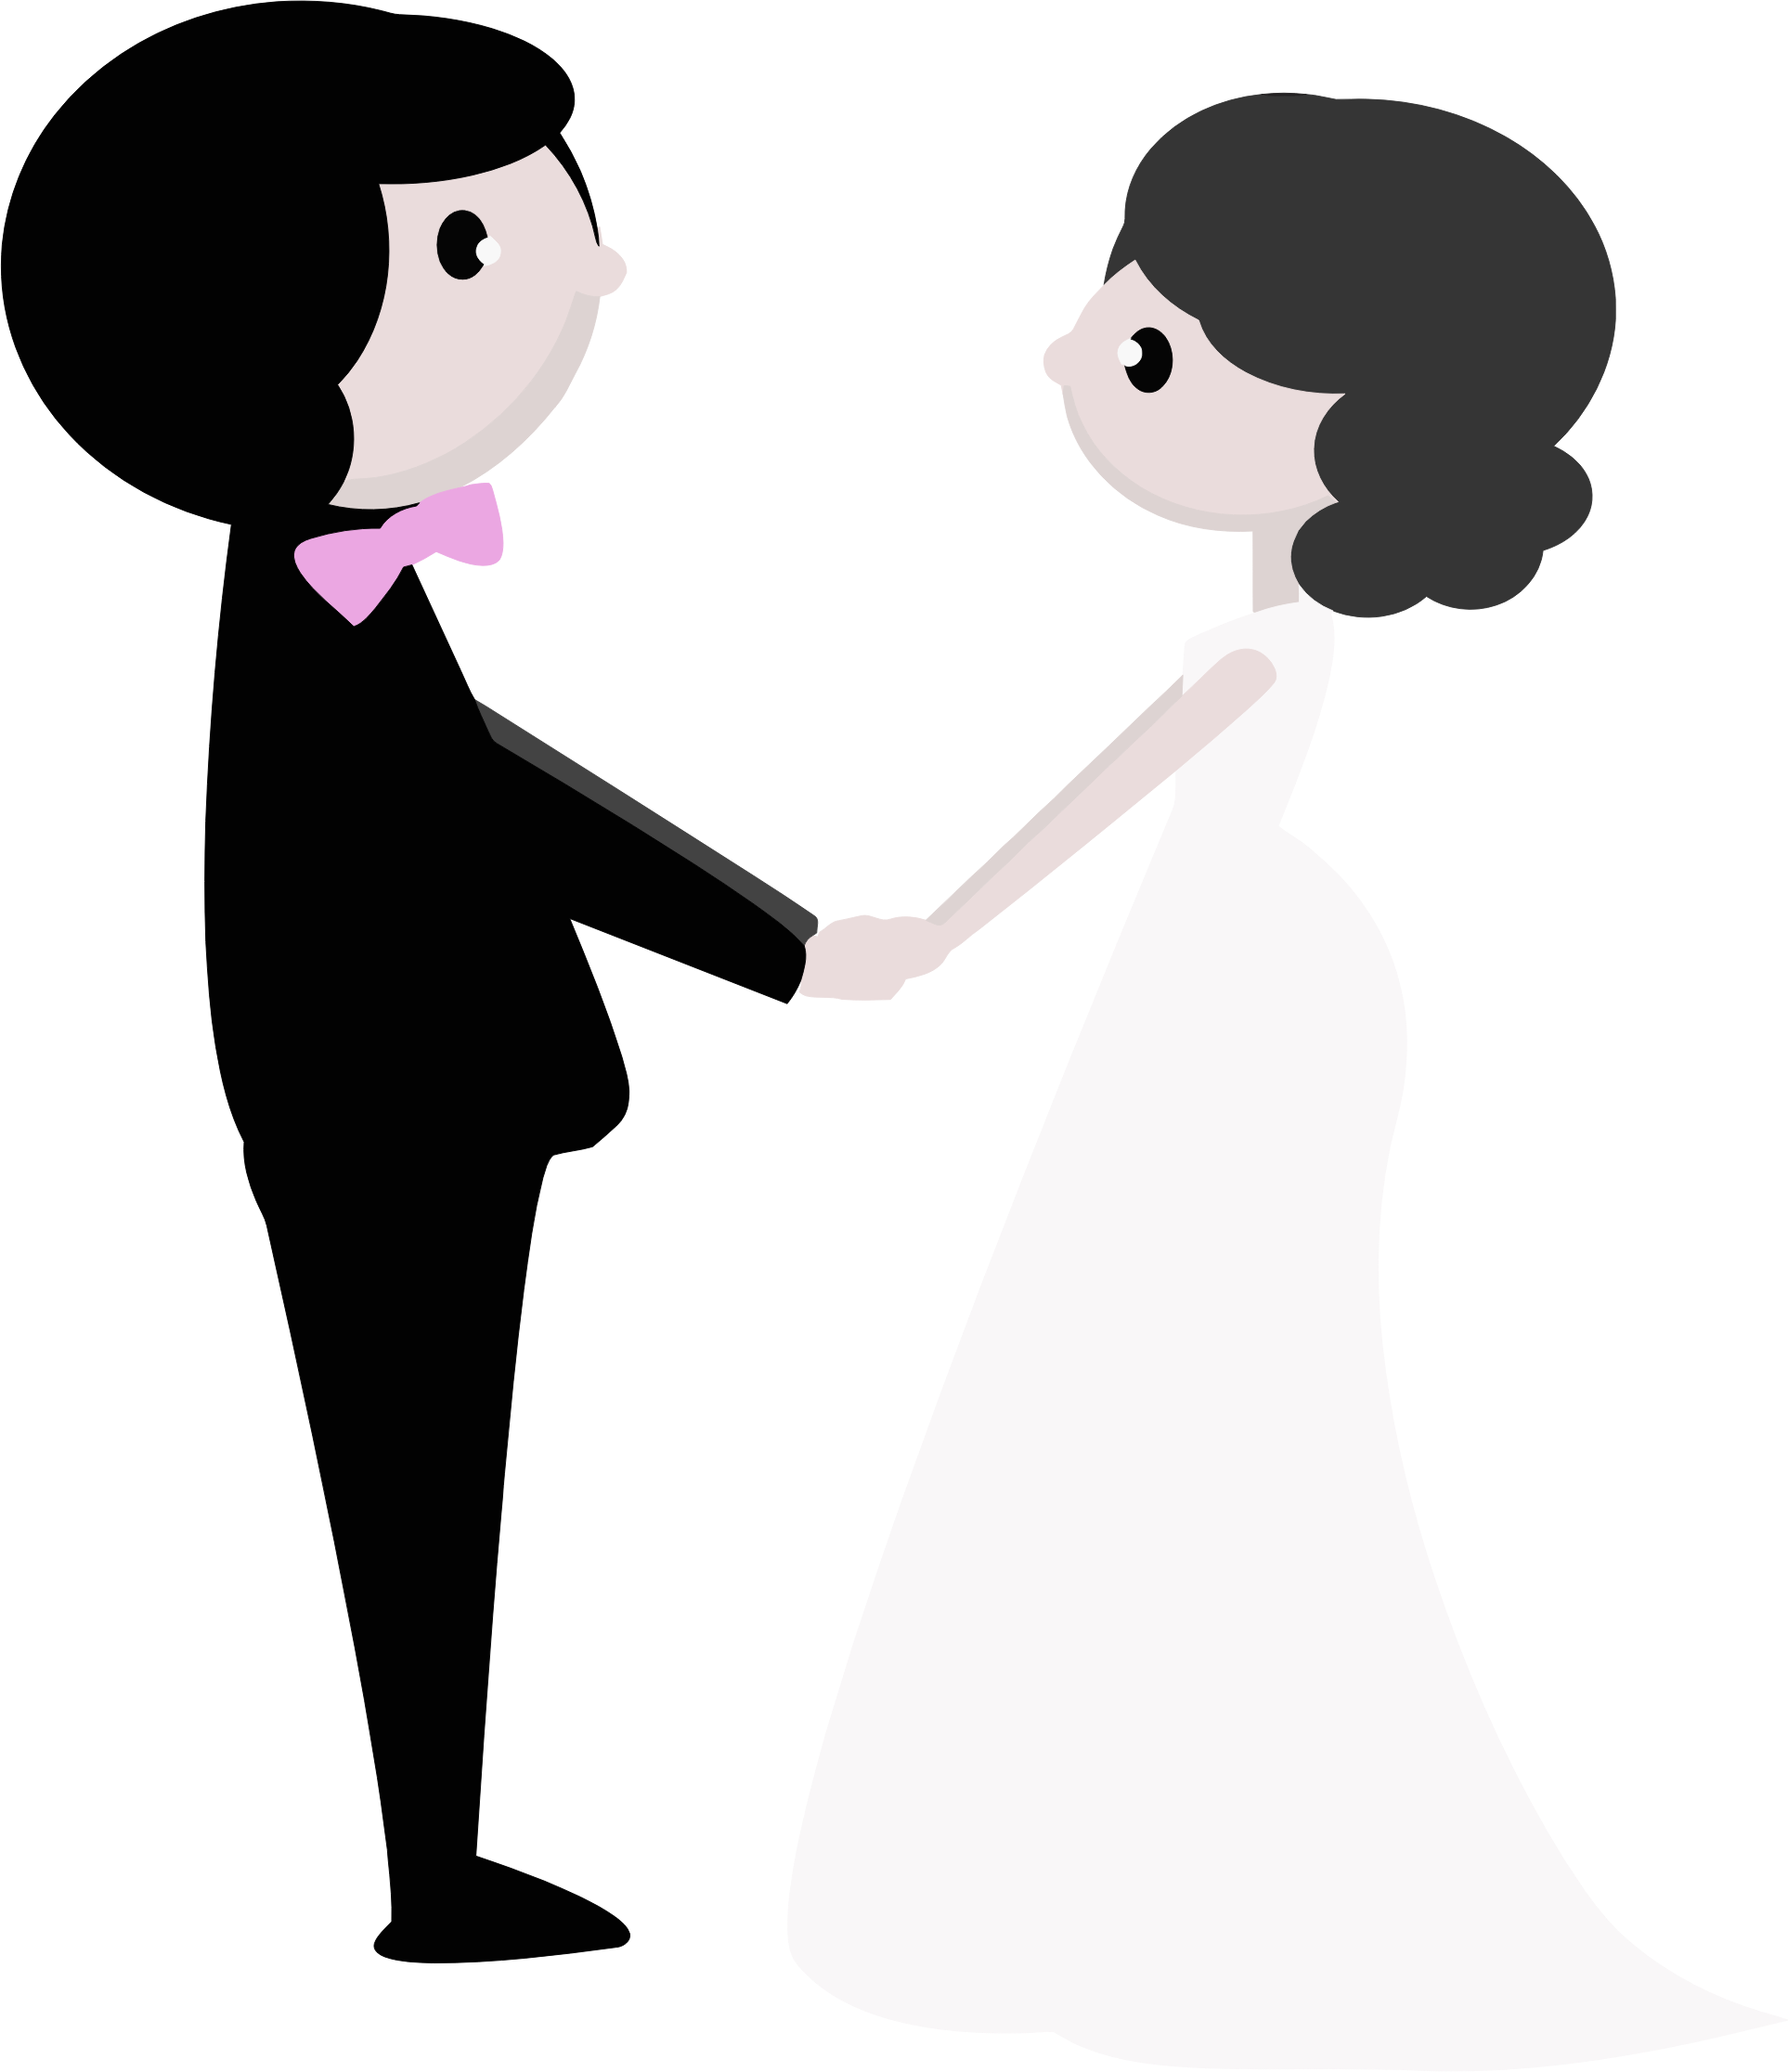 Wedding Png Transparent Free Images: Wedding Cliparts Transparent